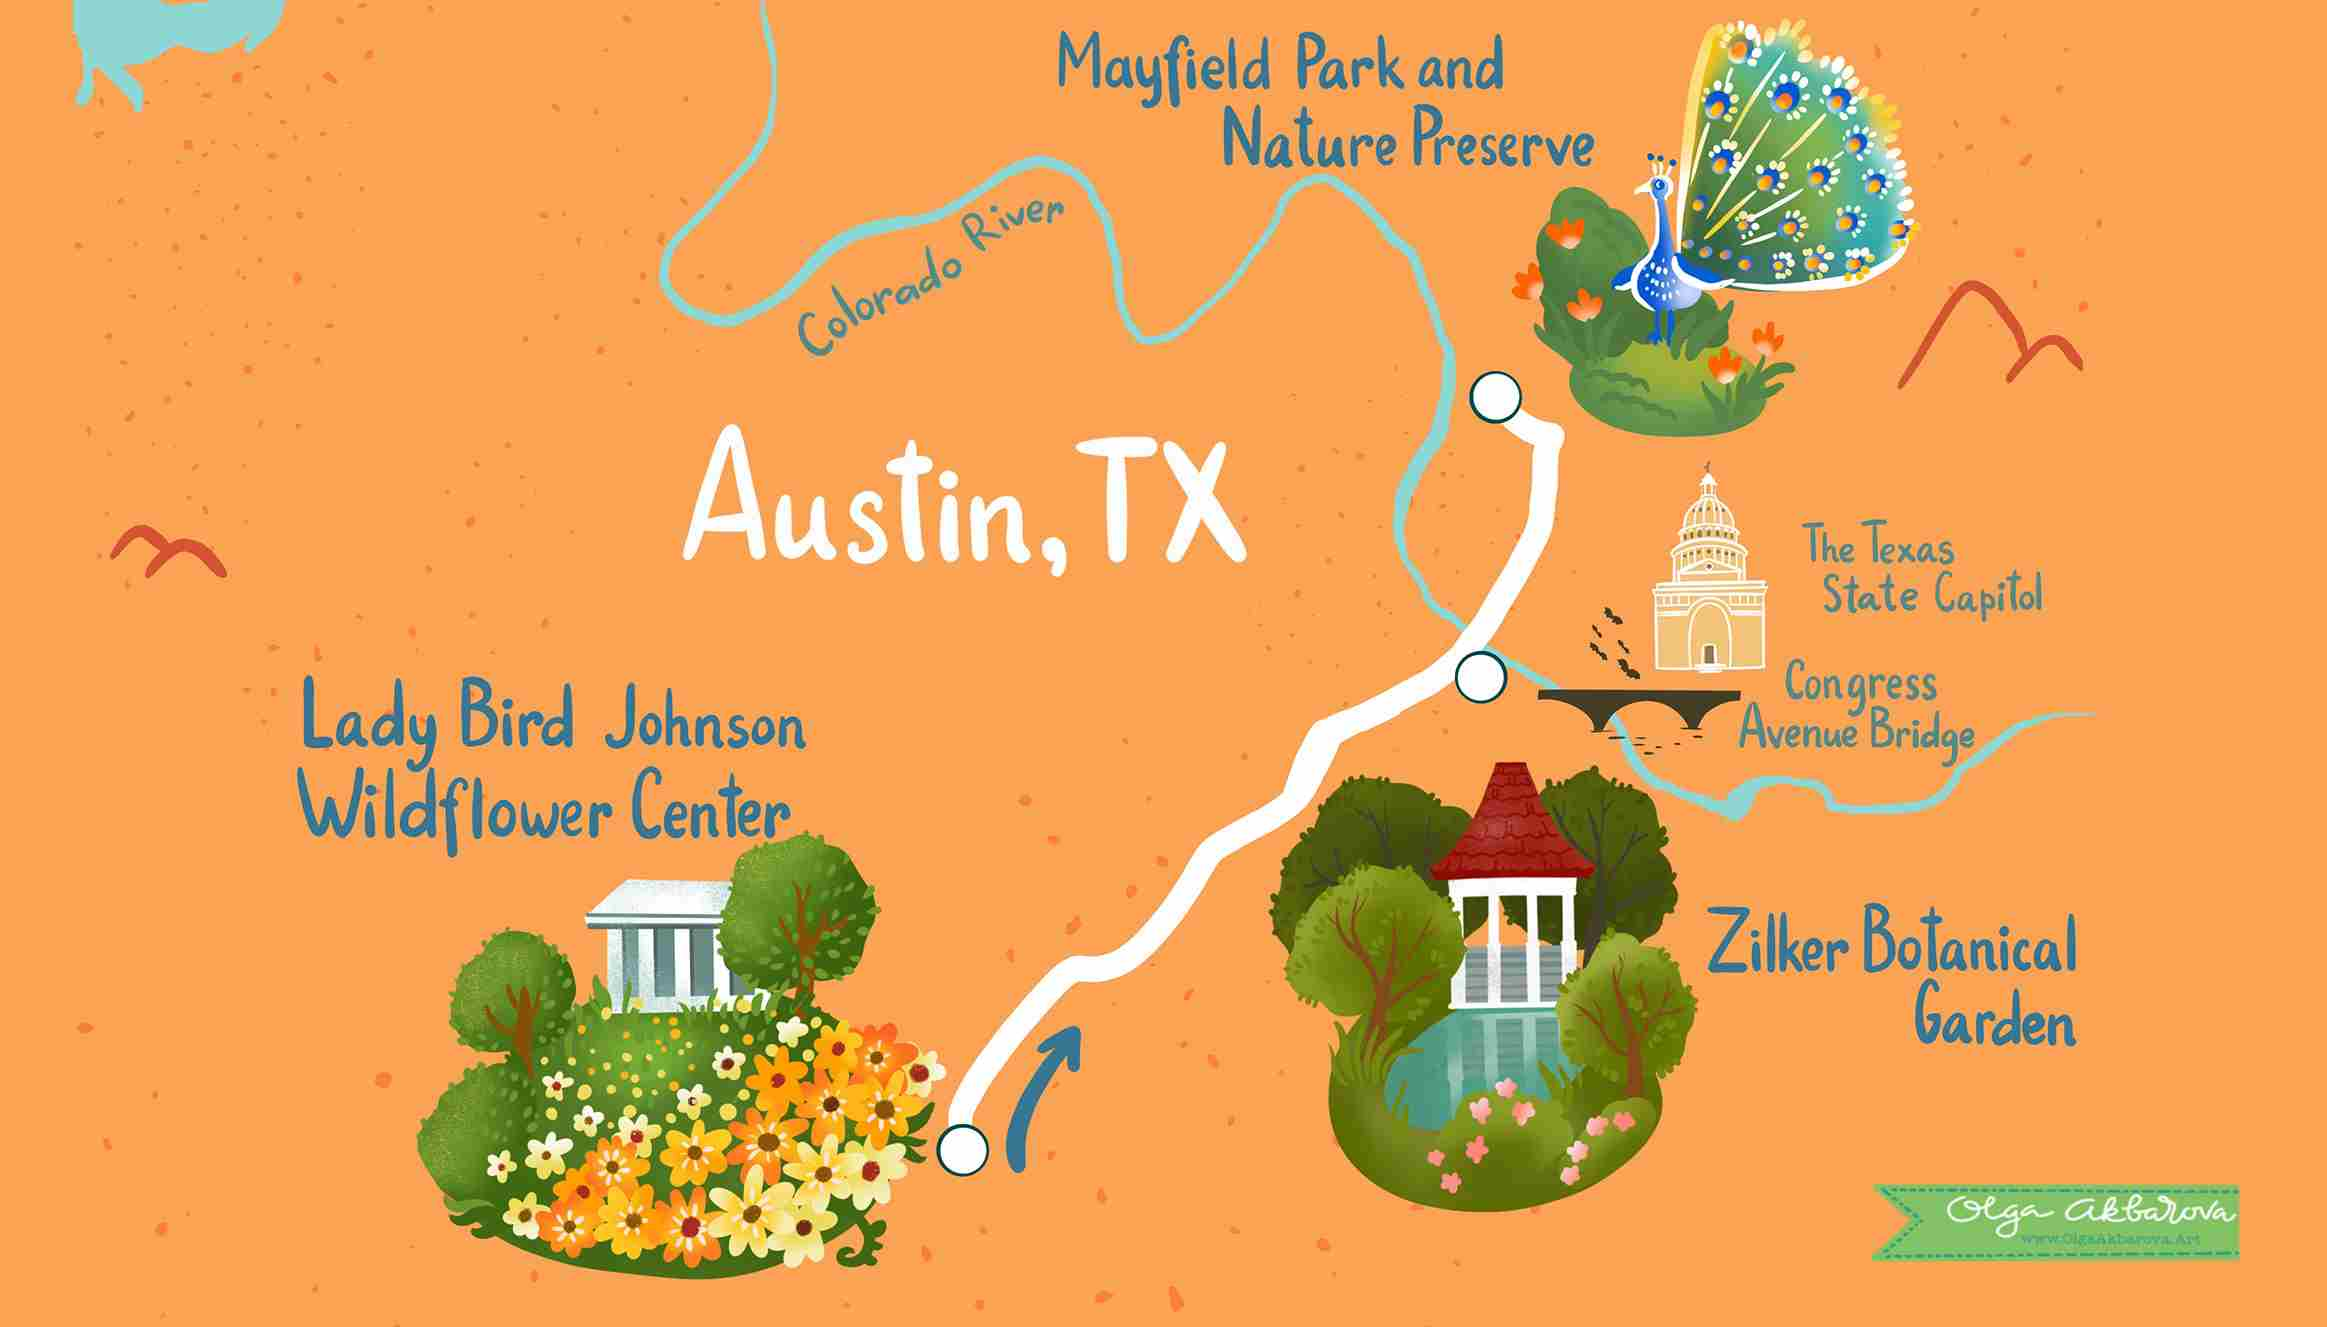 Austin Gardens - Self-Guided Day Trip   Garden Design on jj pickle research center map, mckinney falls state park map, dell diamond map, highland mall map, circuit of the americas map, san marcos map, piedmont park map, the pageant map, fair park map, madison square garden map, wisconsin state parks map, the national map, red rocks amphitheatre map, camp mabry map, edwards aquifer map, austin map, iroquois amphitheater map, lakeline mall map, stadium map,